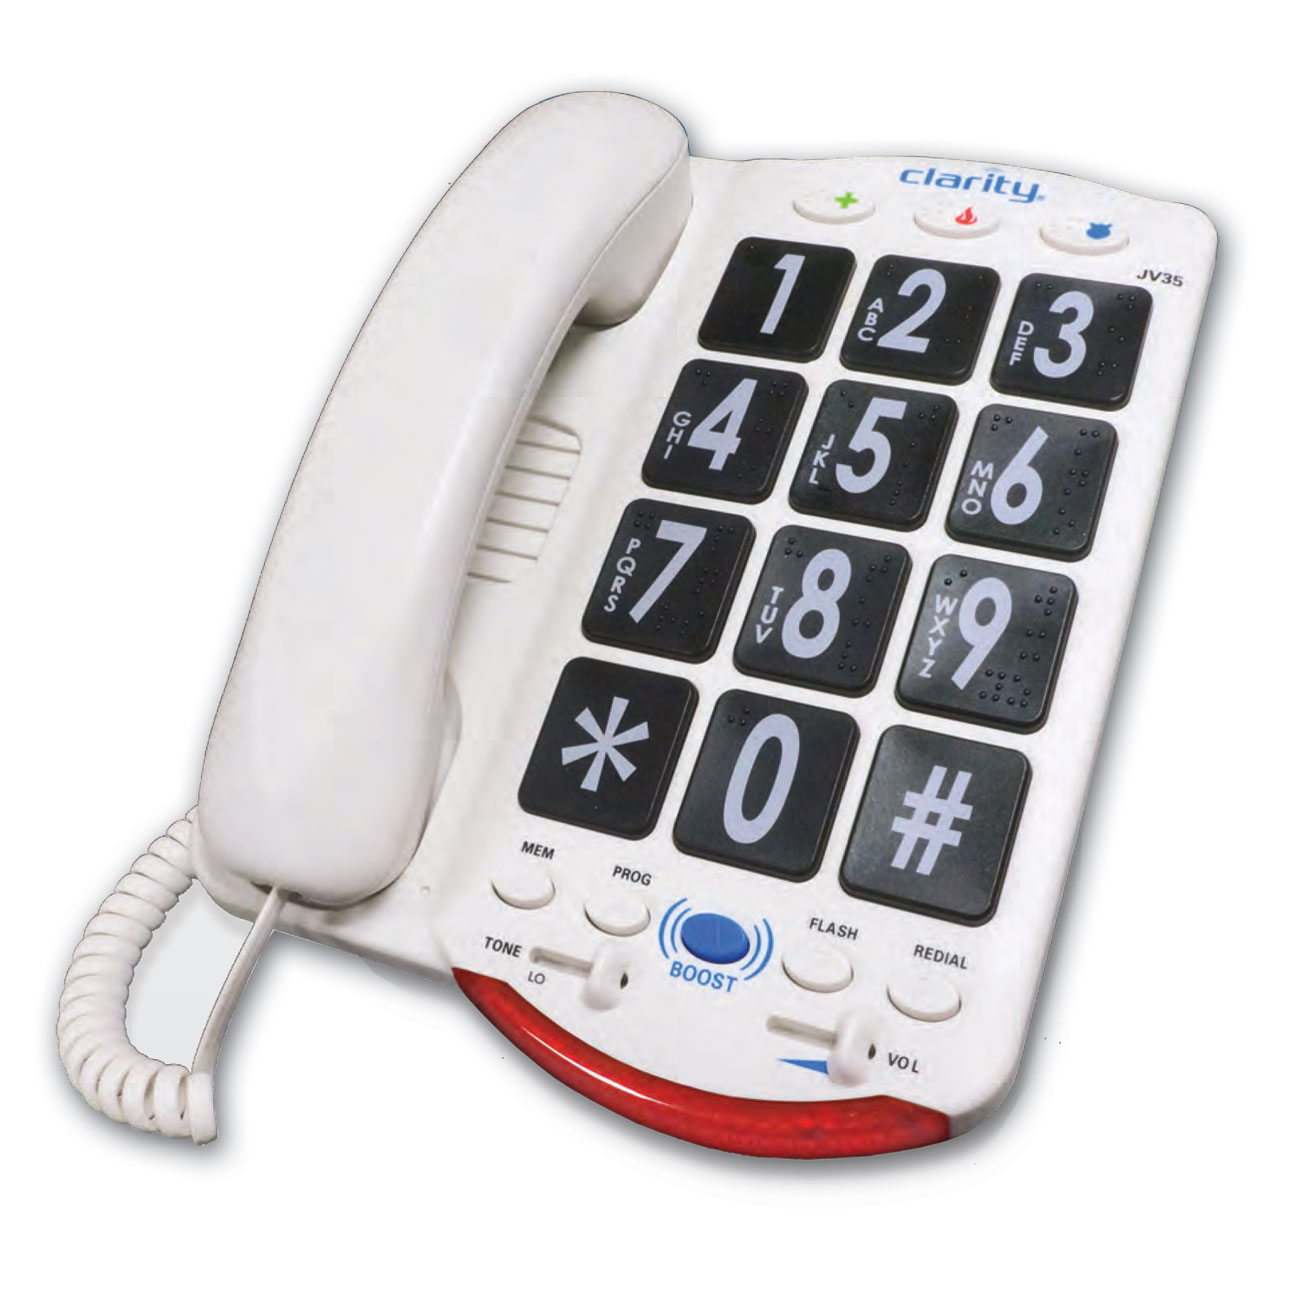 Clarity JV35 50dB Amplified Telephone with Talk Back- Black Buttons